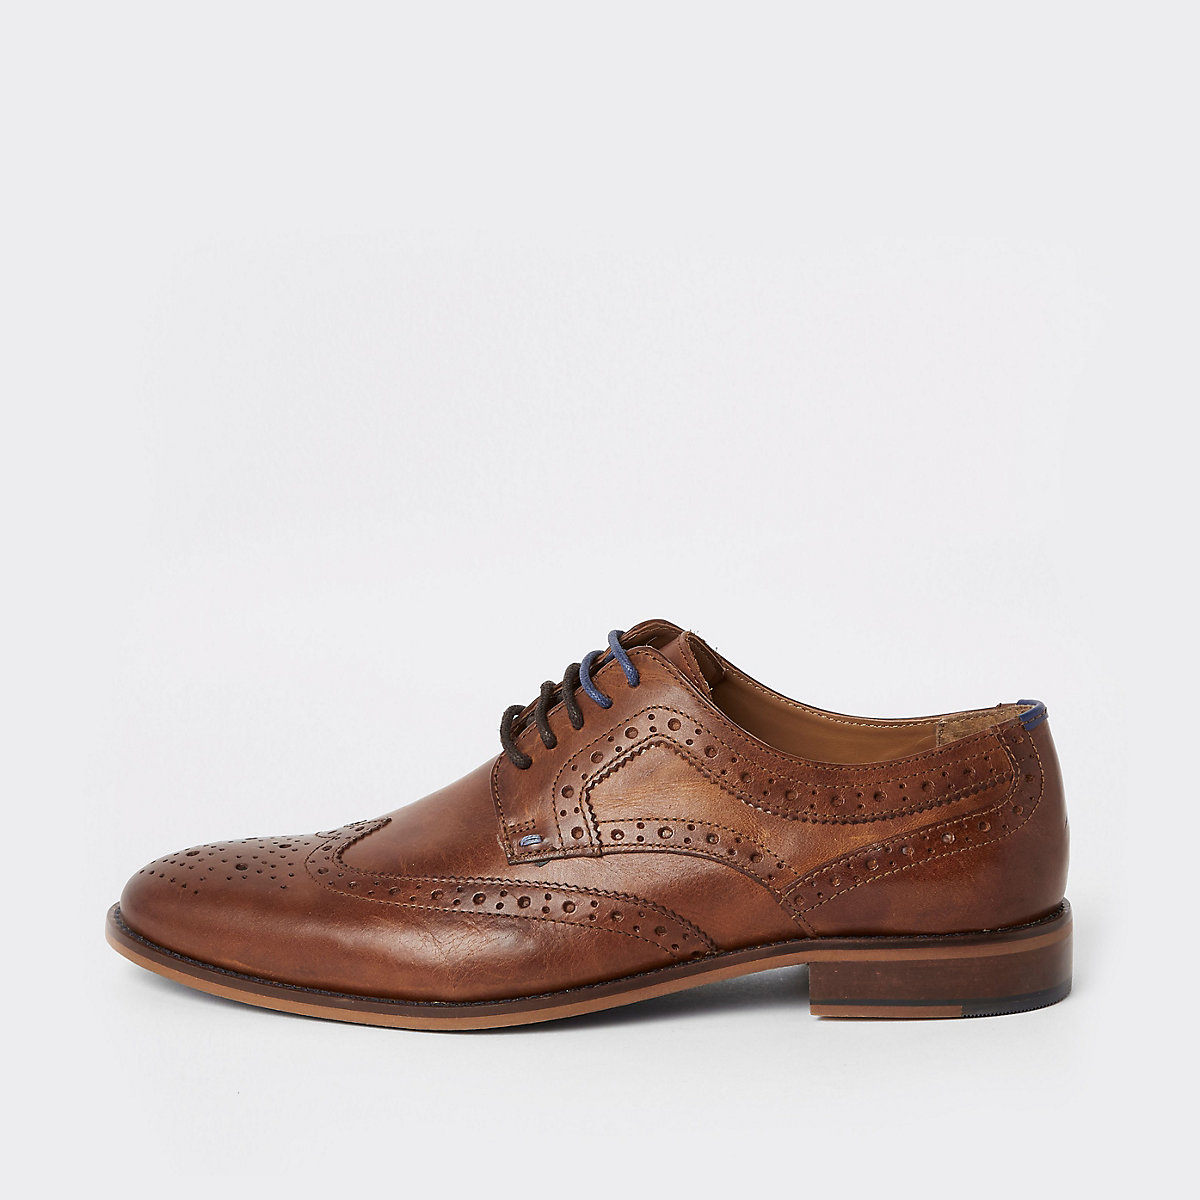 Mid brown leather lace-up brogues